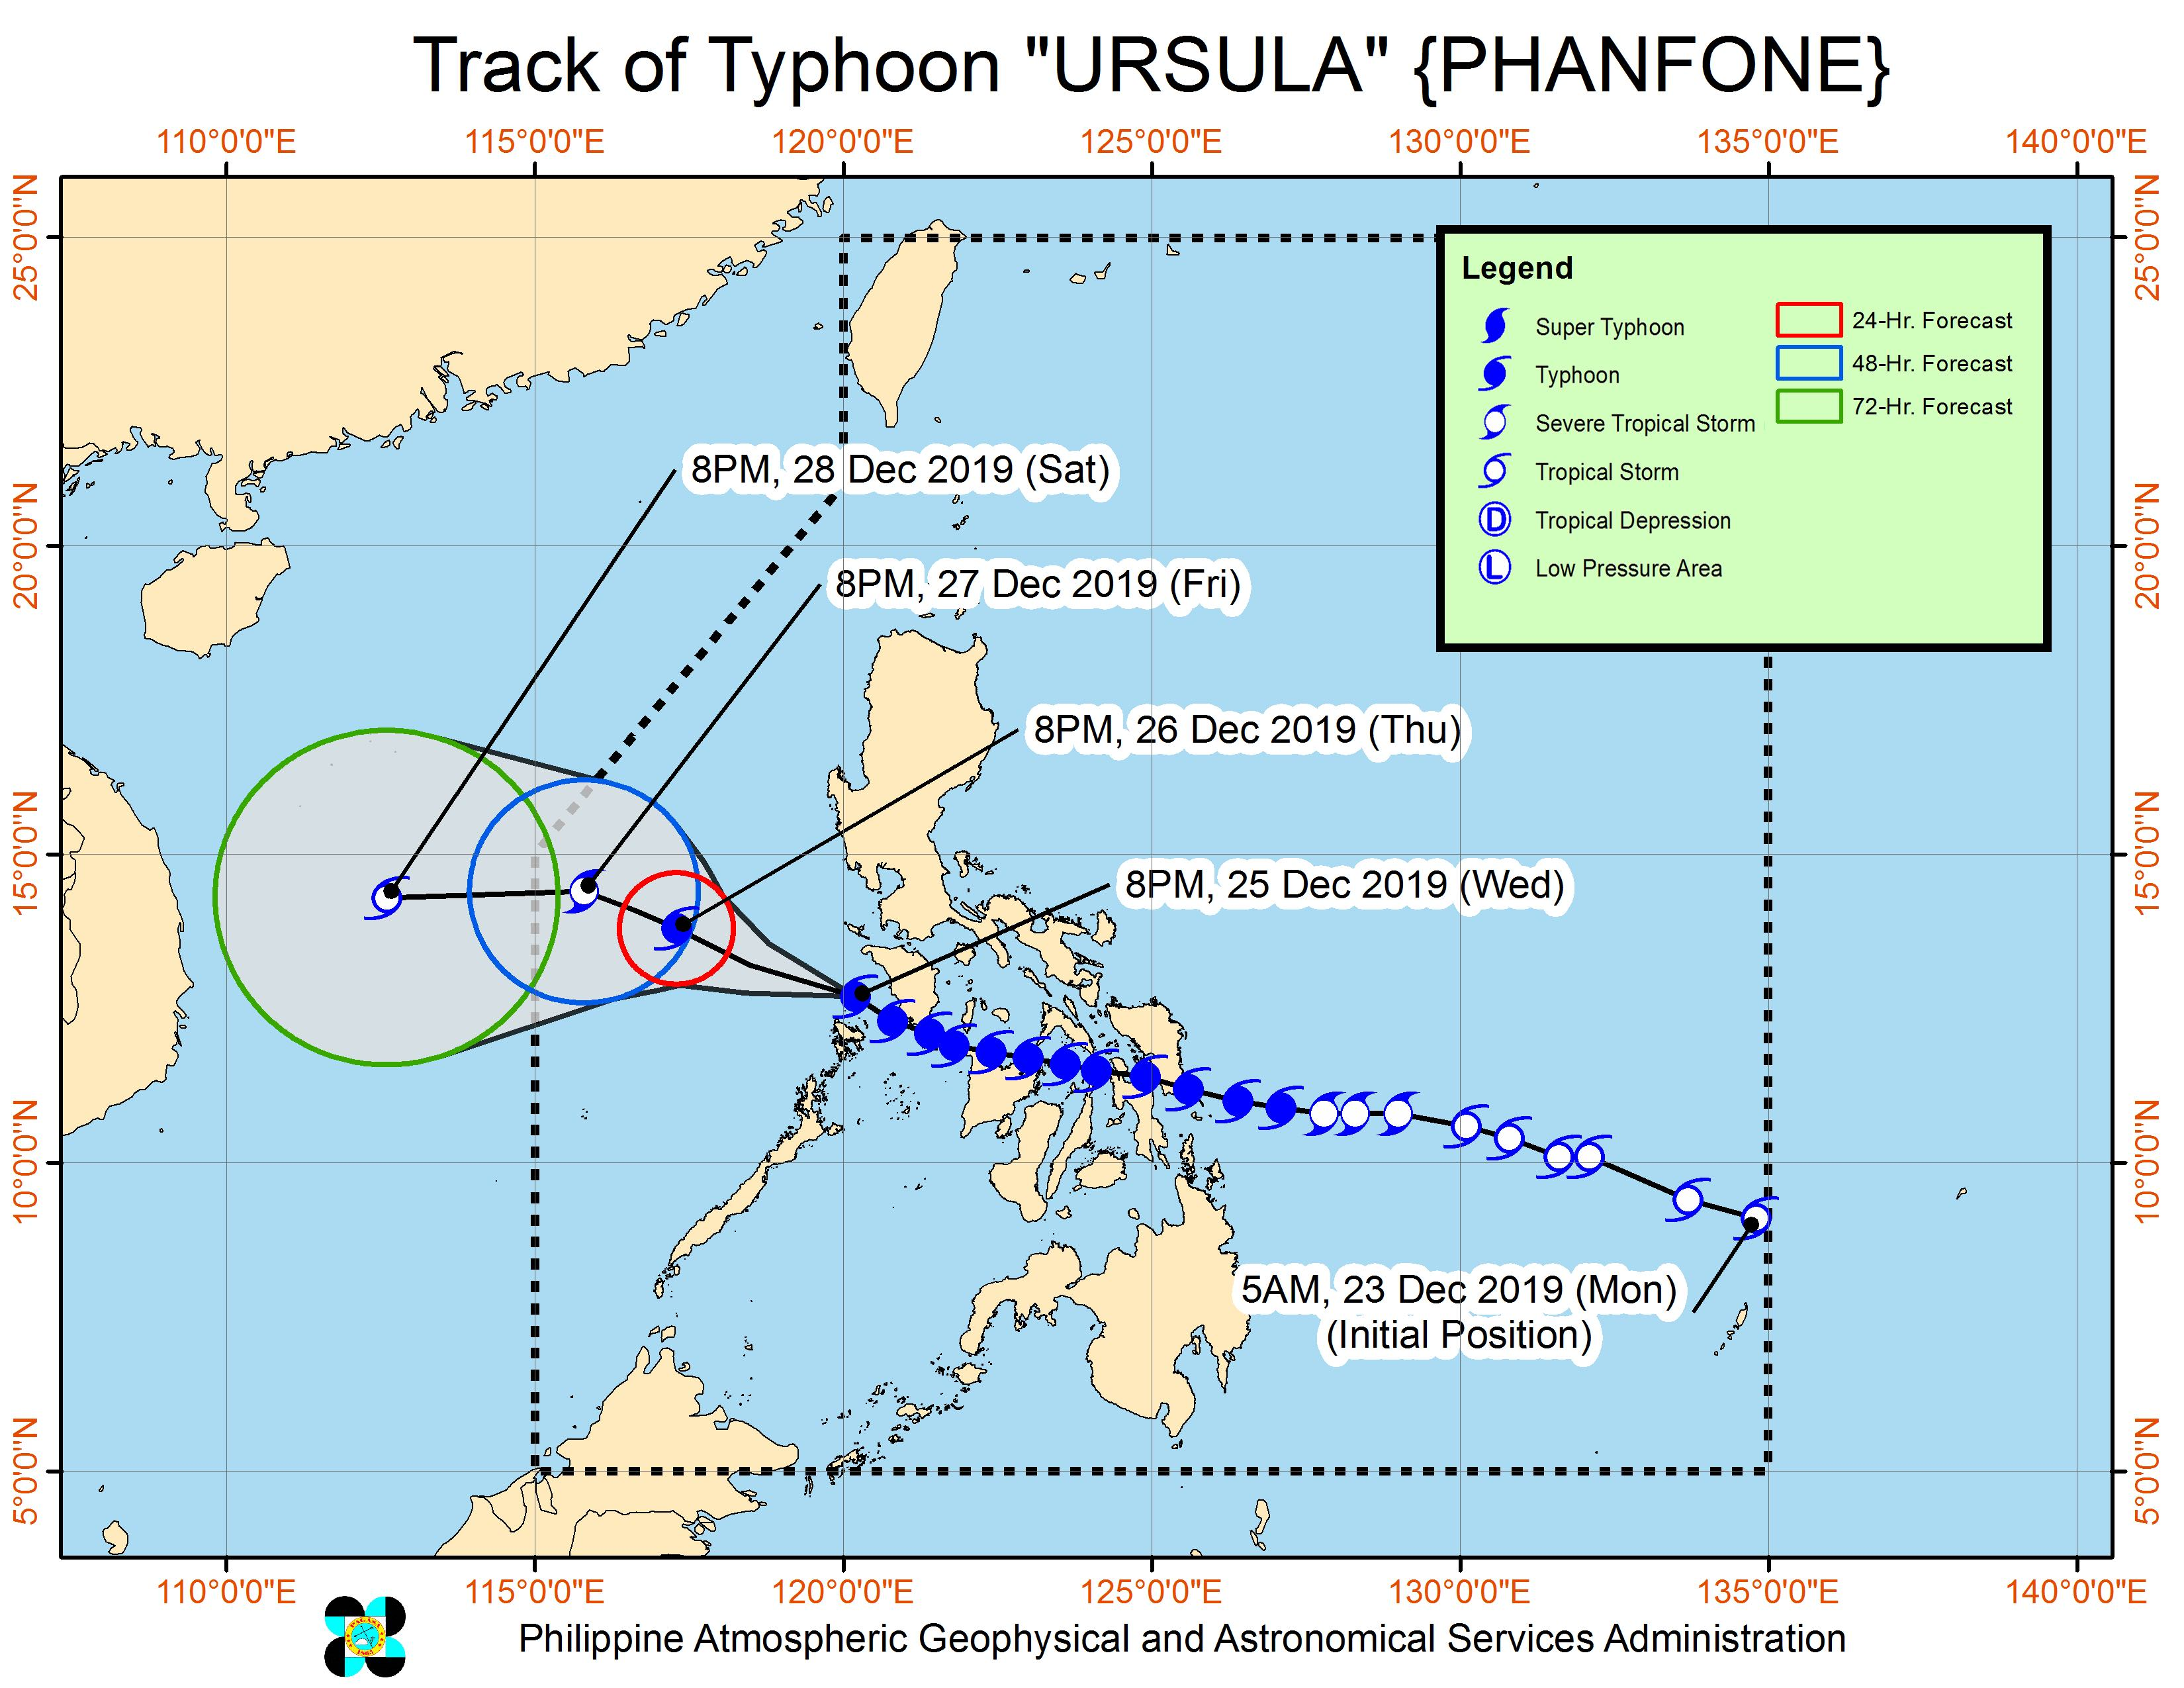 Forecast track of Typhoon Ursula (Phanfone) as of December 25, 2019, 11 pm. Image from PAGASA